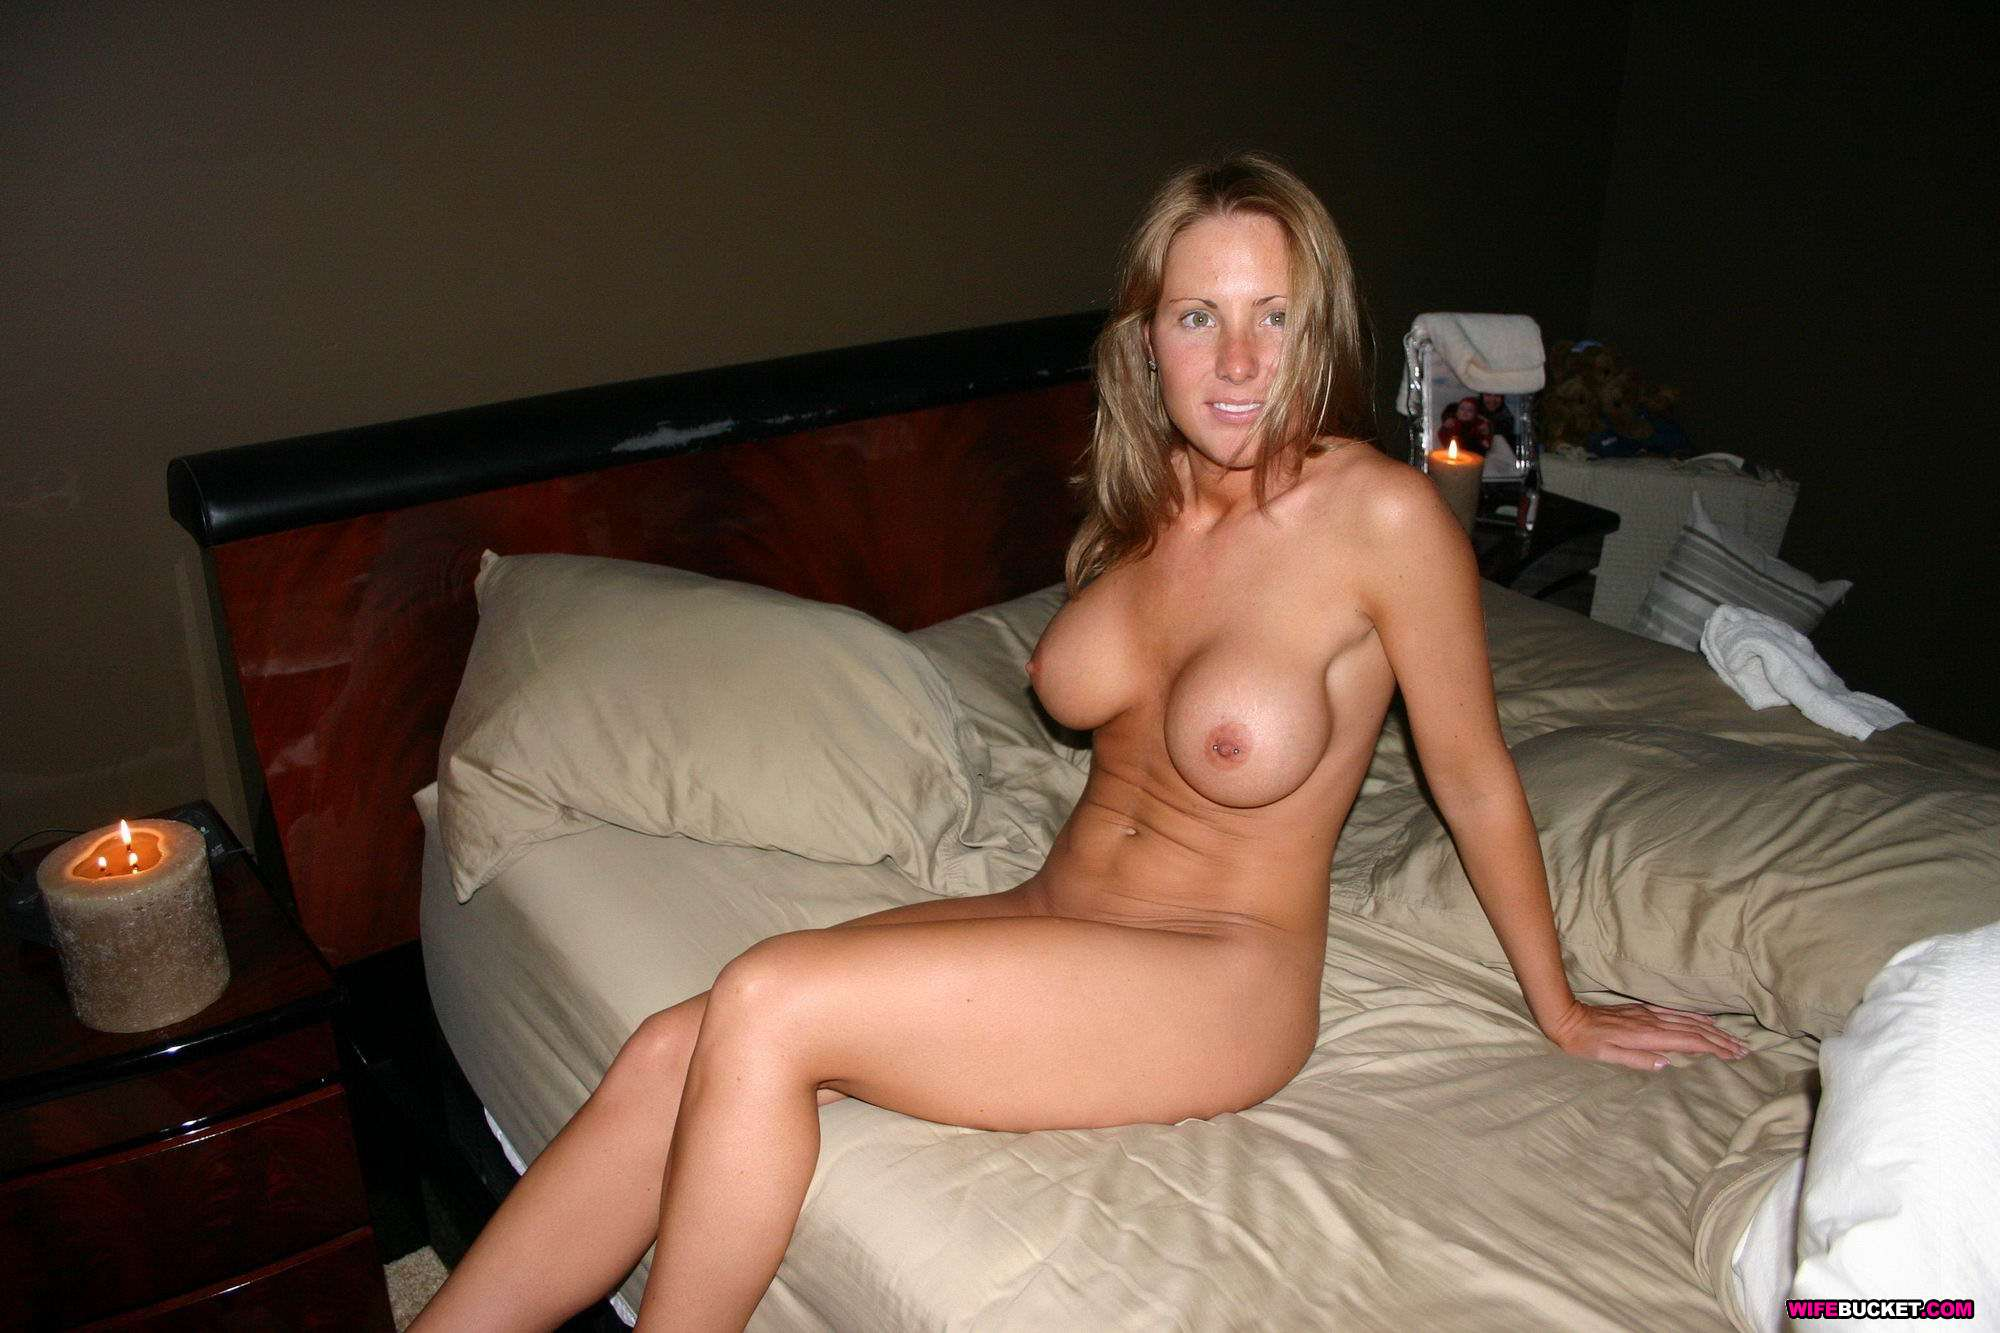 Sure love amateur free miltf video